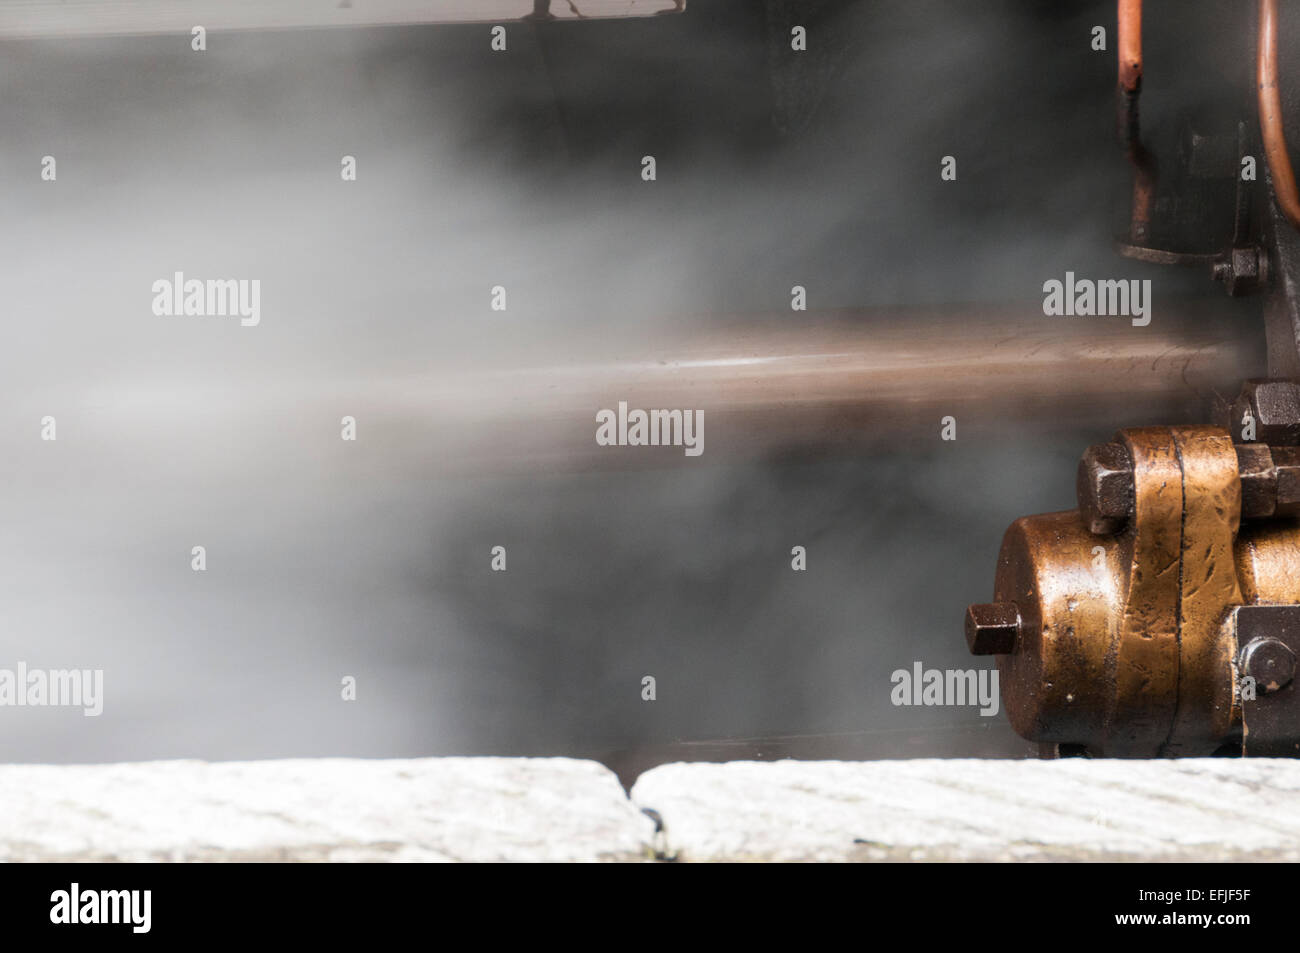 Close view of steam escaping from a piston that forms part of the driving mechanism of a steam loco - Stock Image